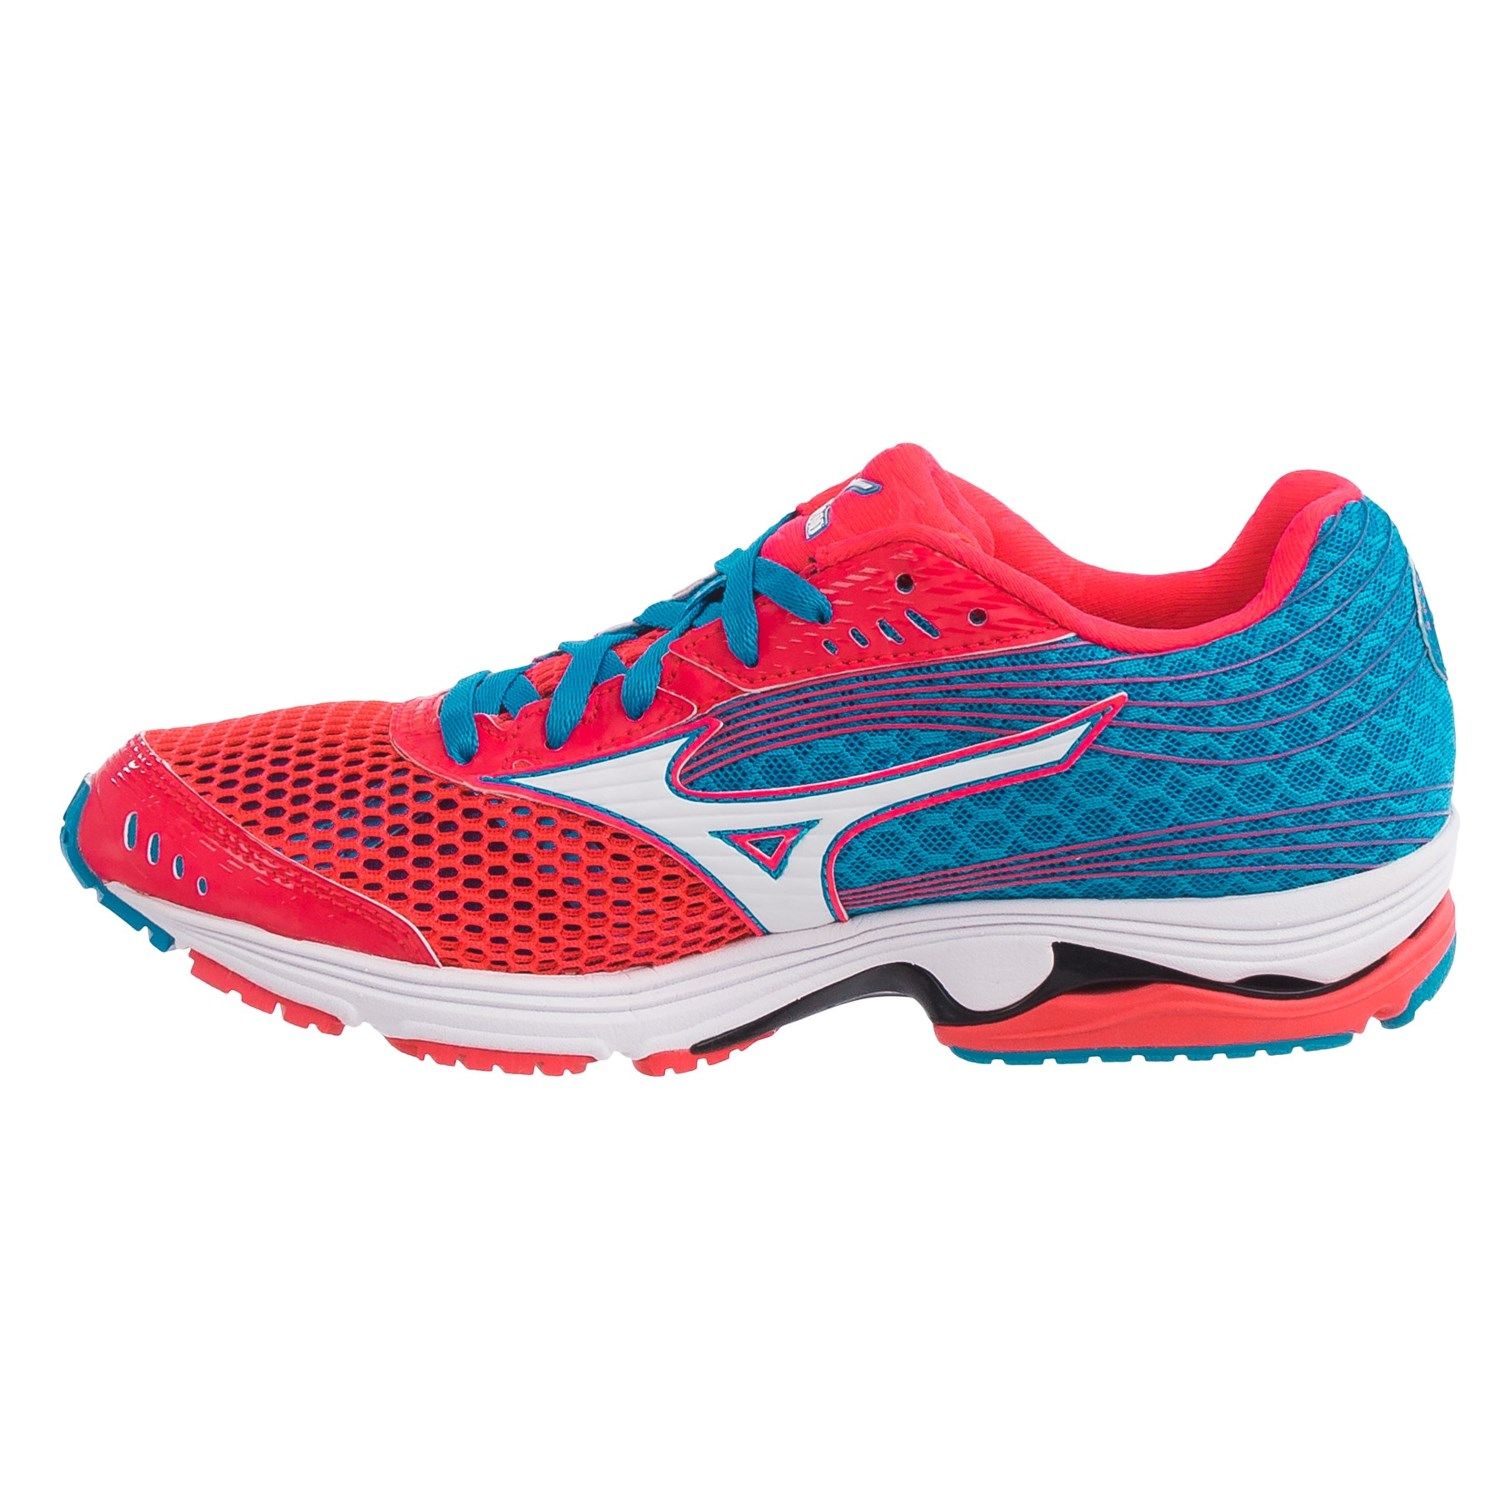 Mizuno Sayonara Running Shoes Review